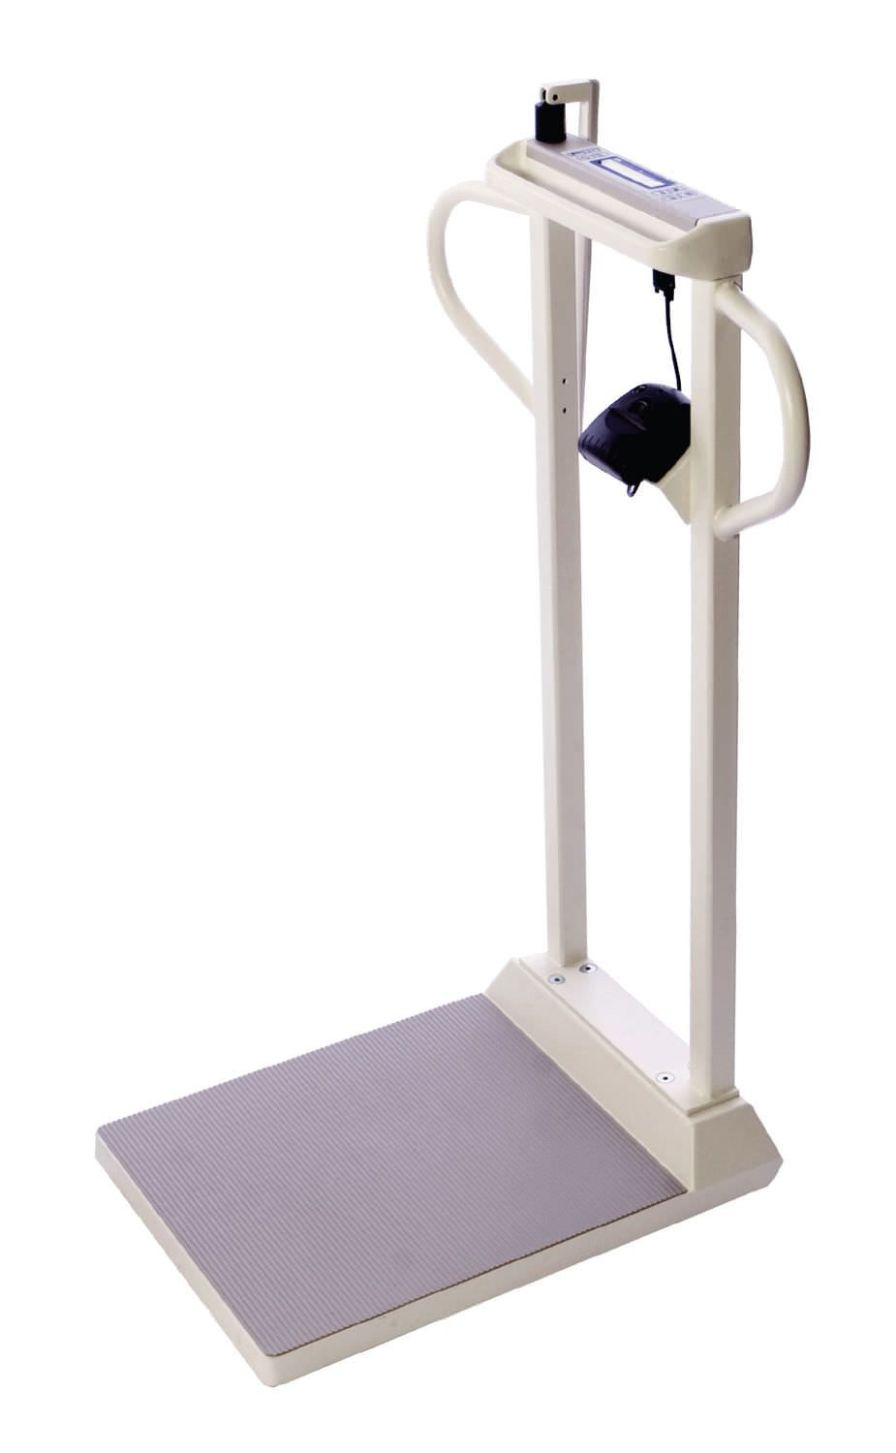 Bariatric patient weighing scale / electronic / column type / with height rod 454 Kg - 109-199 cm | SR565I SR Instruments